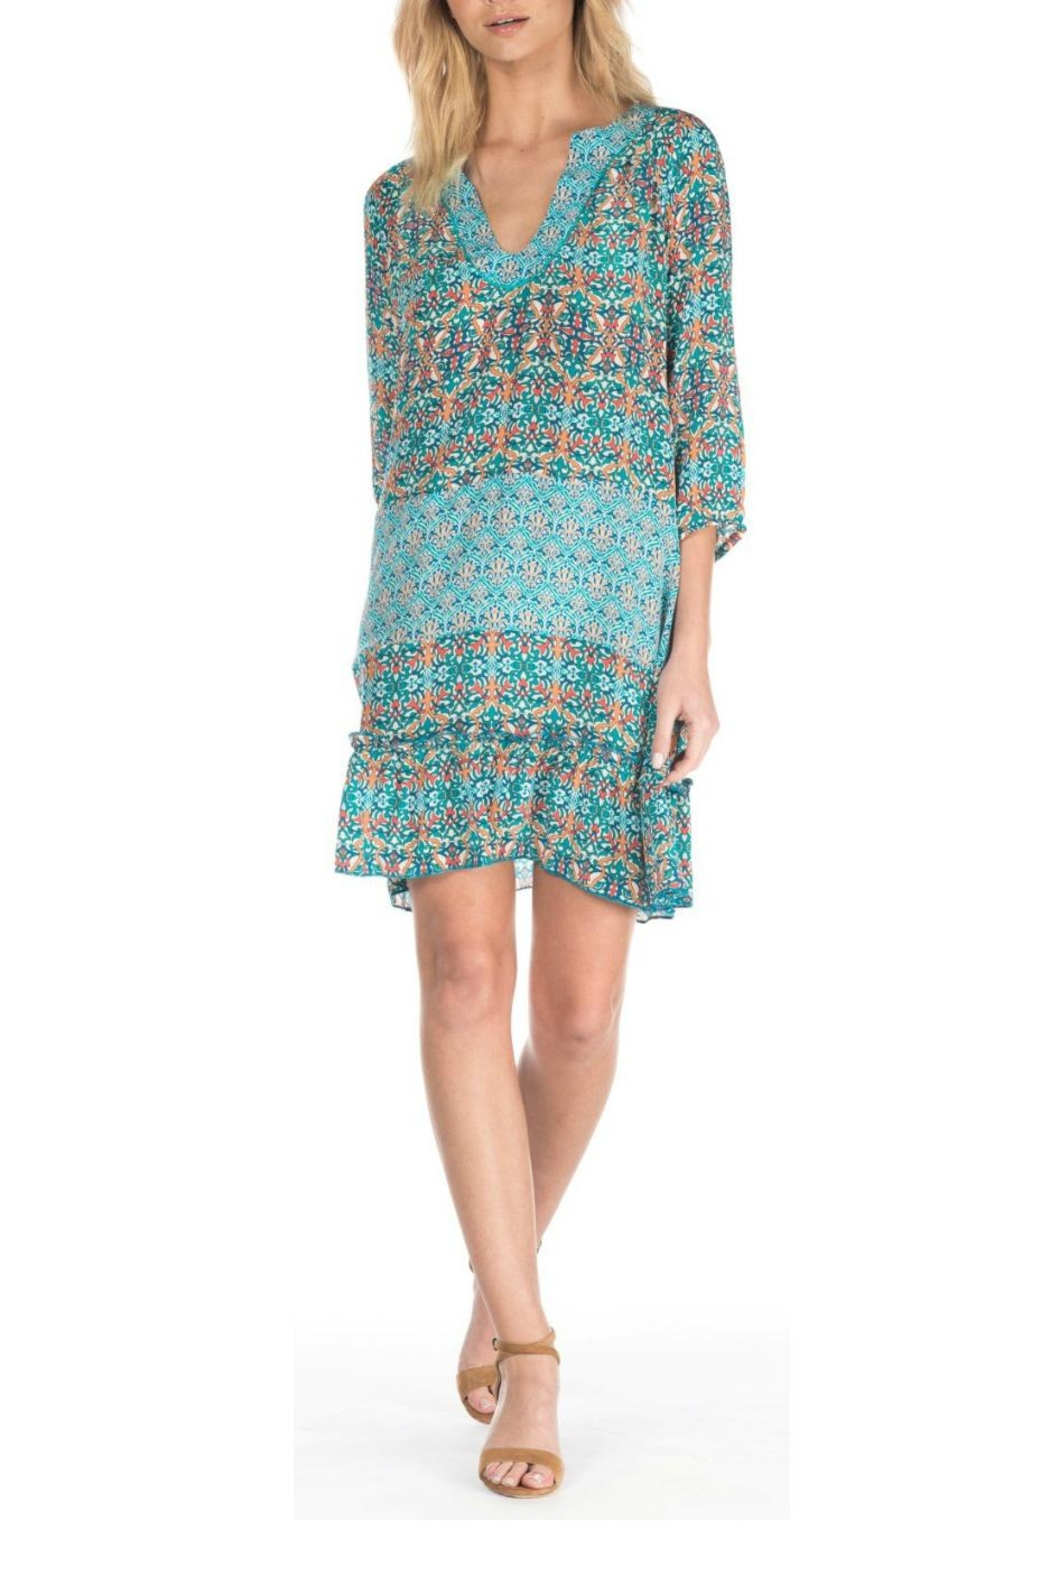 Tolani Dolly Turquoise Dress - Main Image